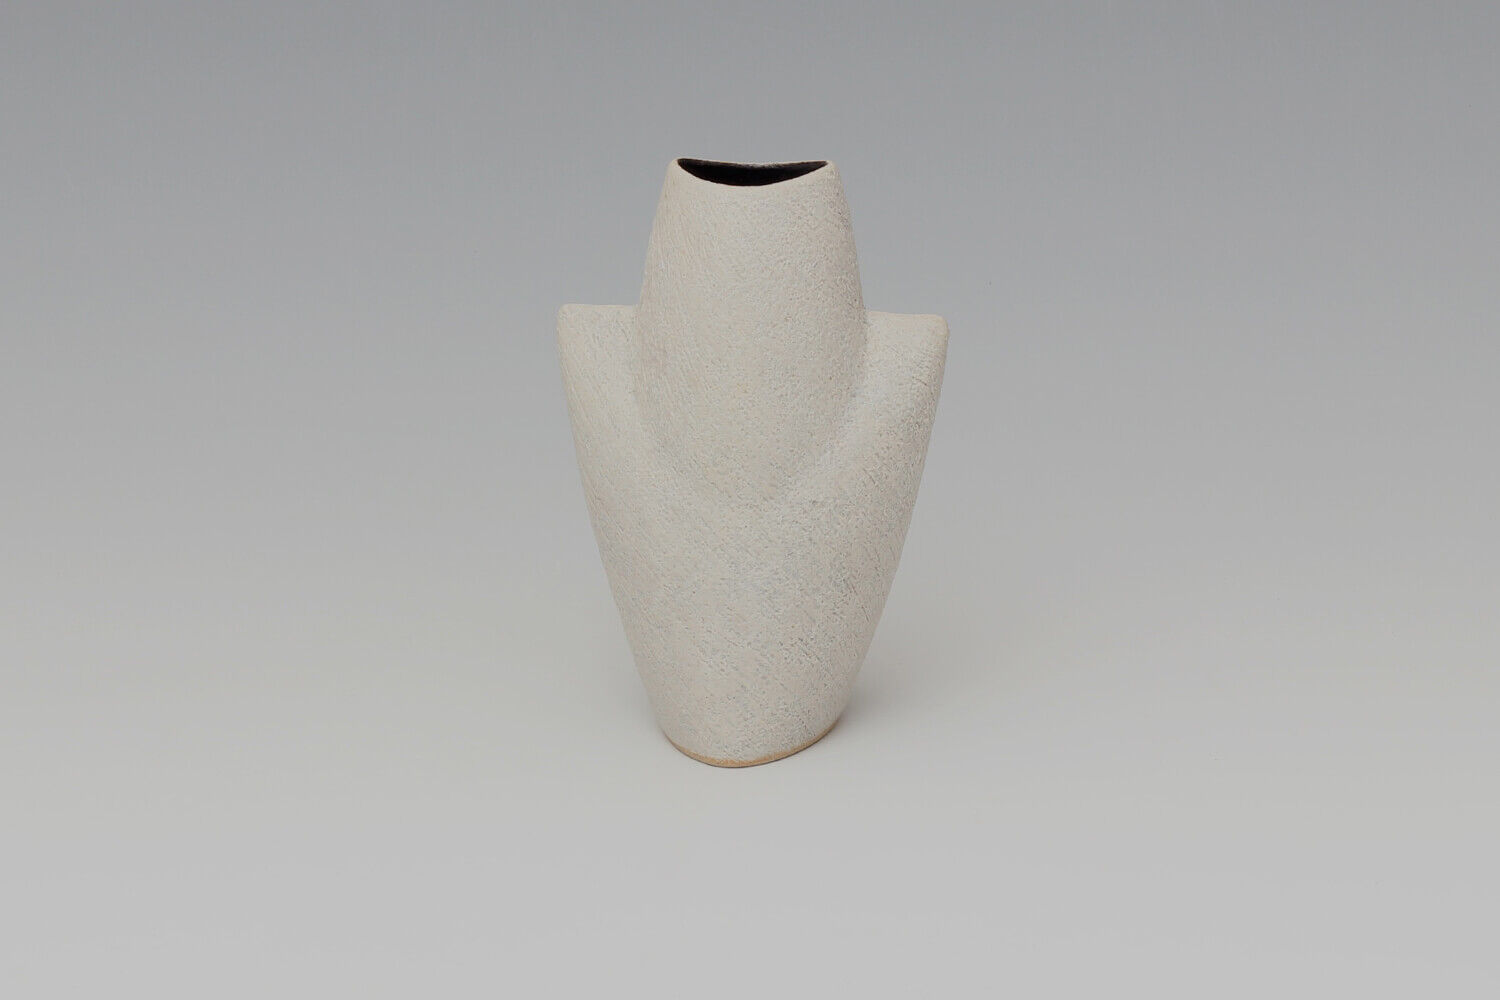 Chris Carter Ceramic White Masked Form 161